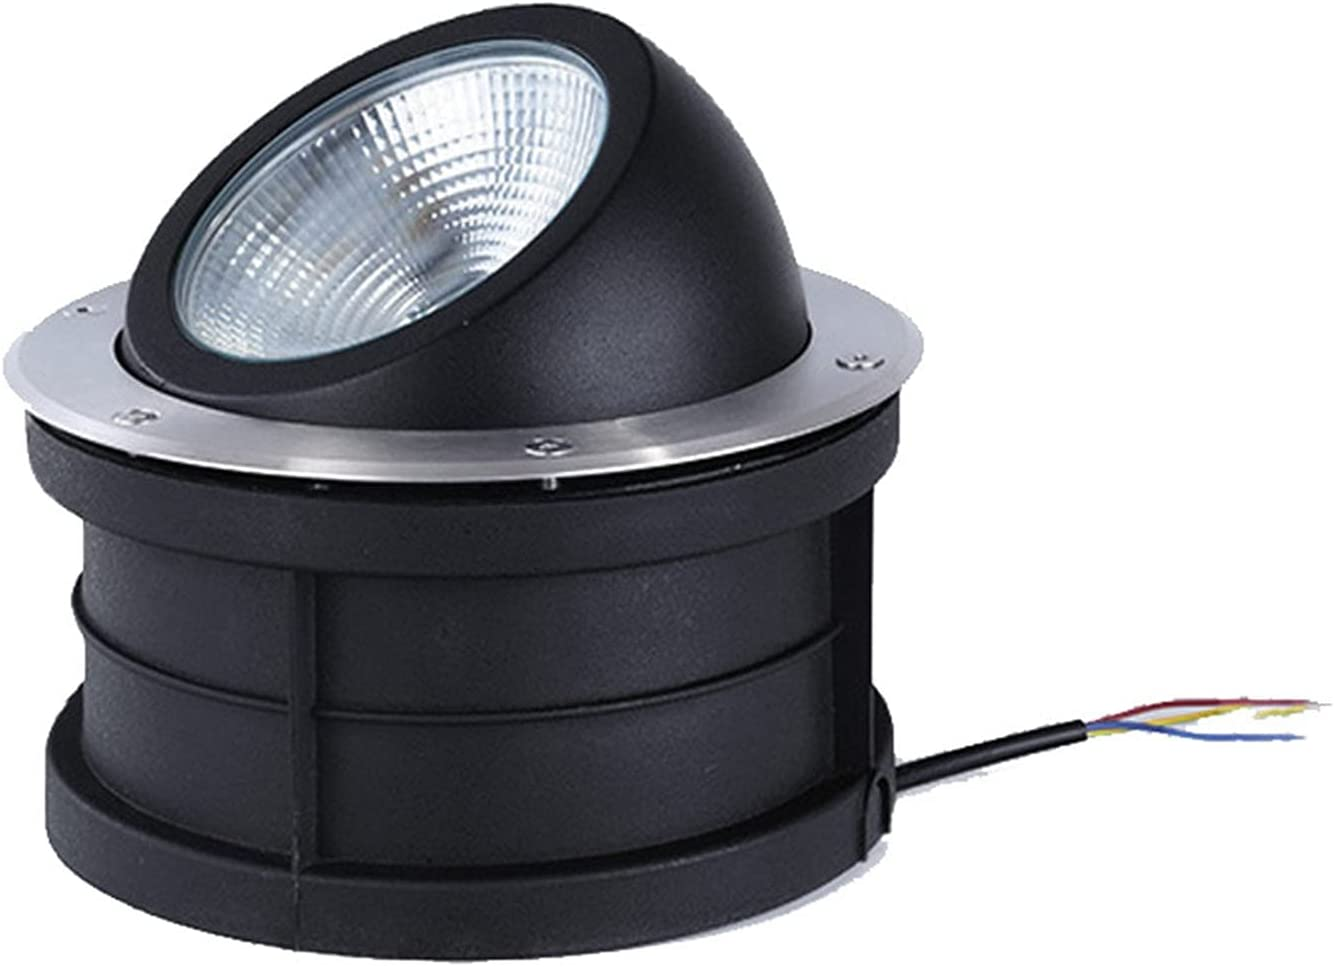 Max 69% OFF AMDHJ Outdoor Buried Lights Now on sale 24V Lamp Round Underground 1